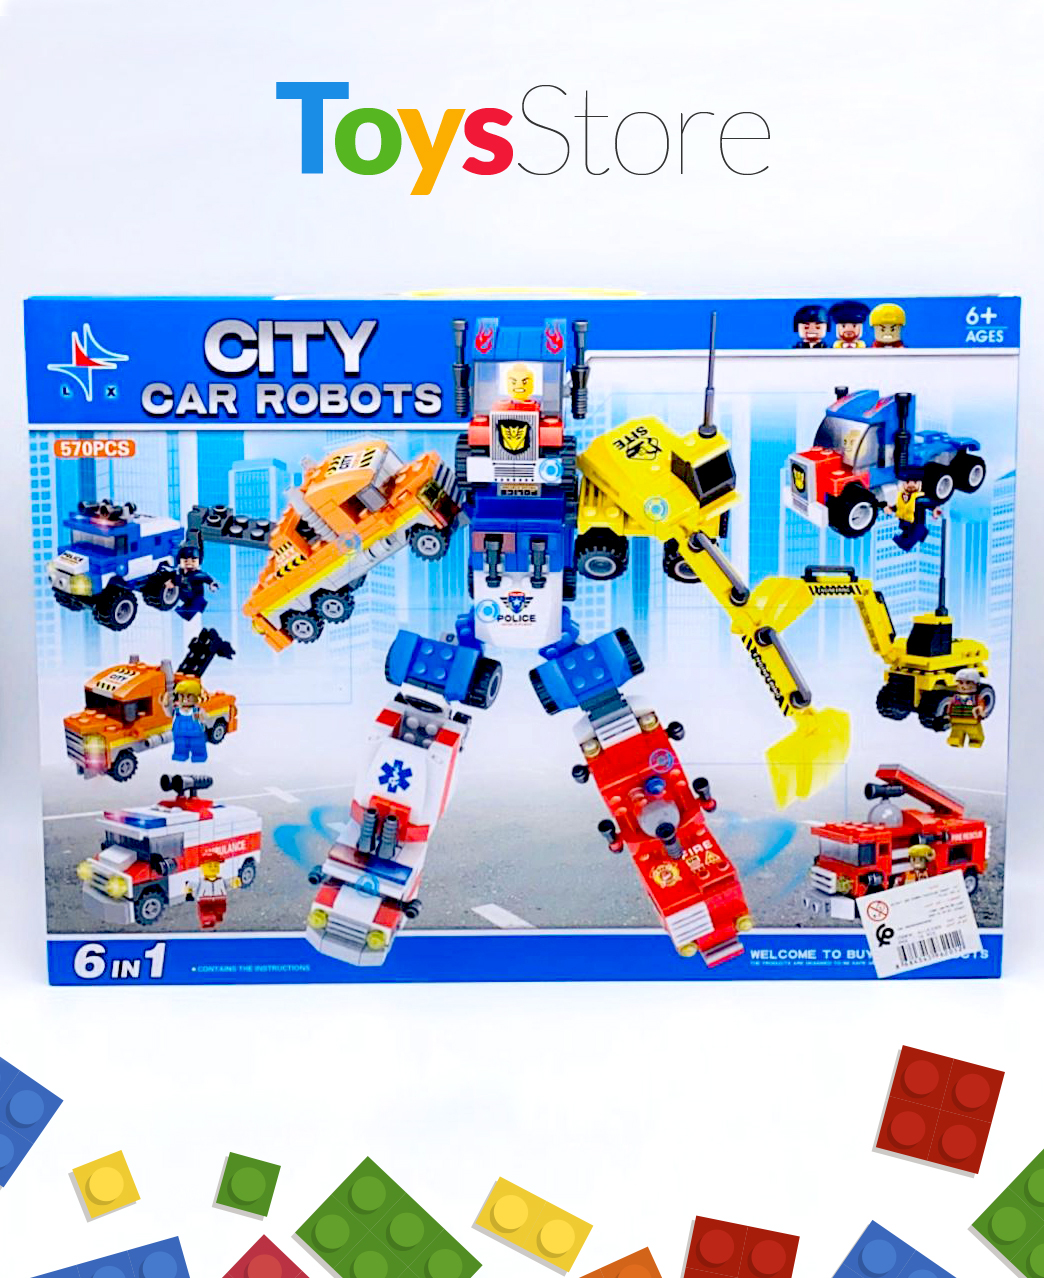 Jouets voitures transformables en Robot 6 en 1 - City Car Robot